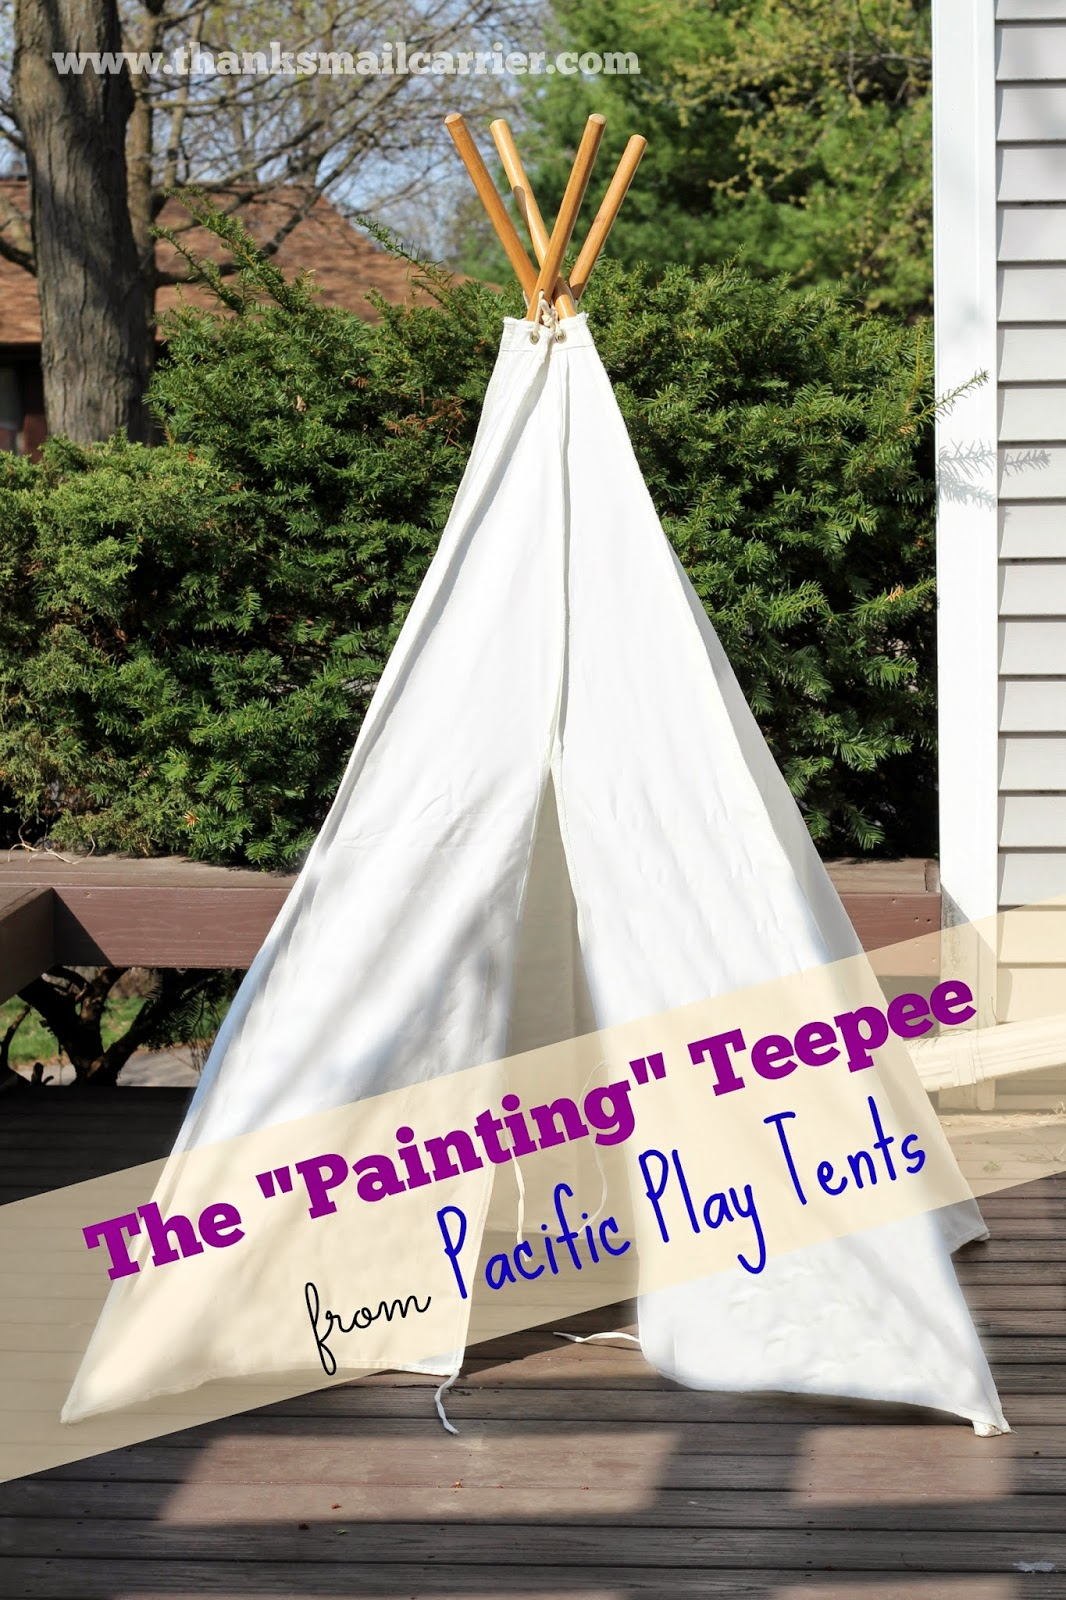 The Painting Teepee review